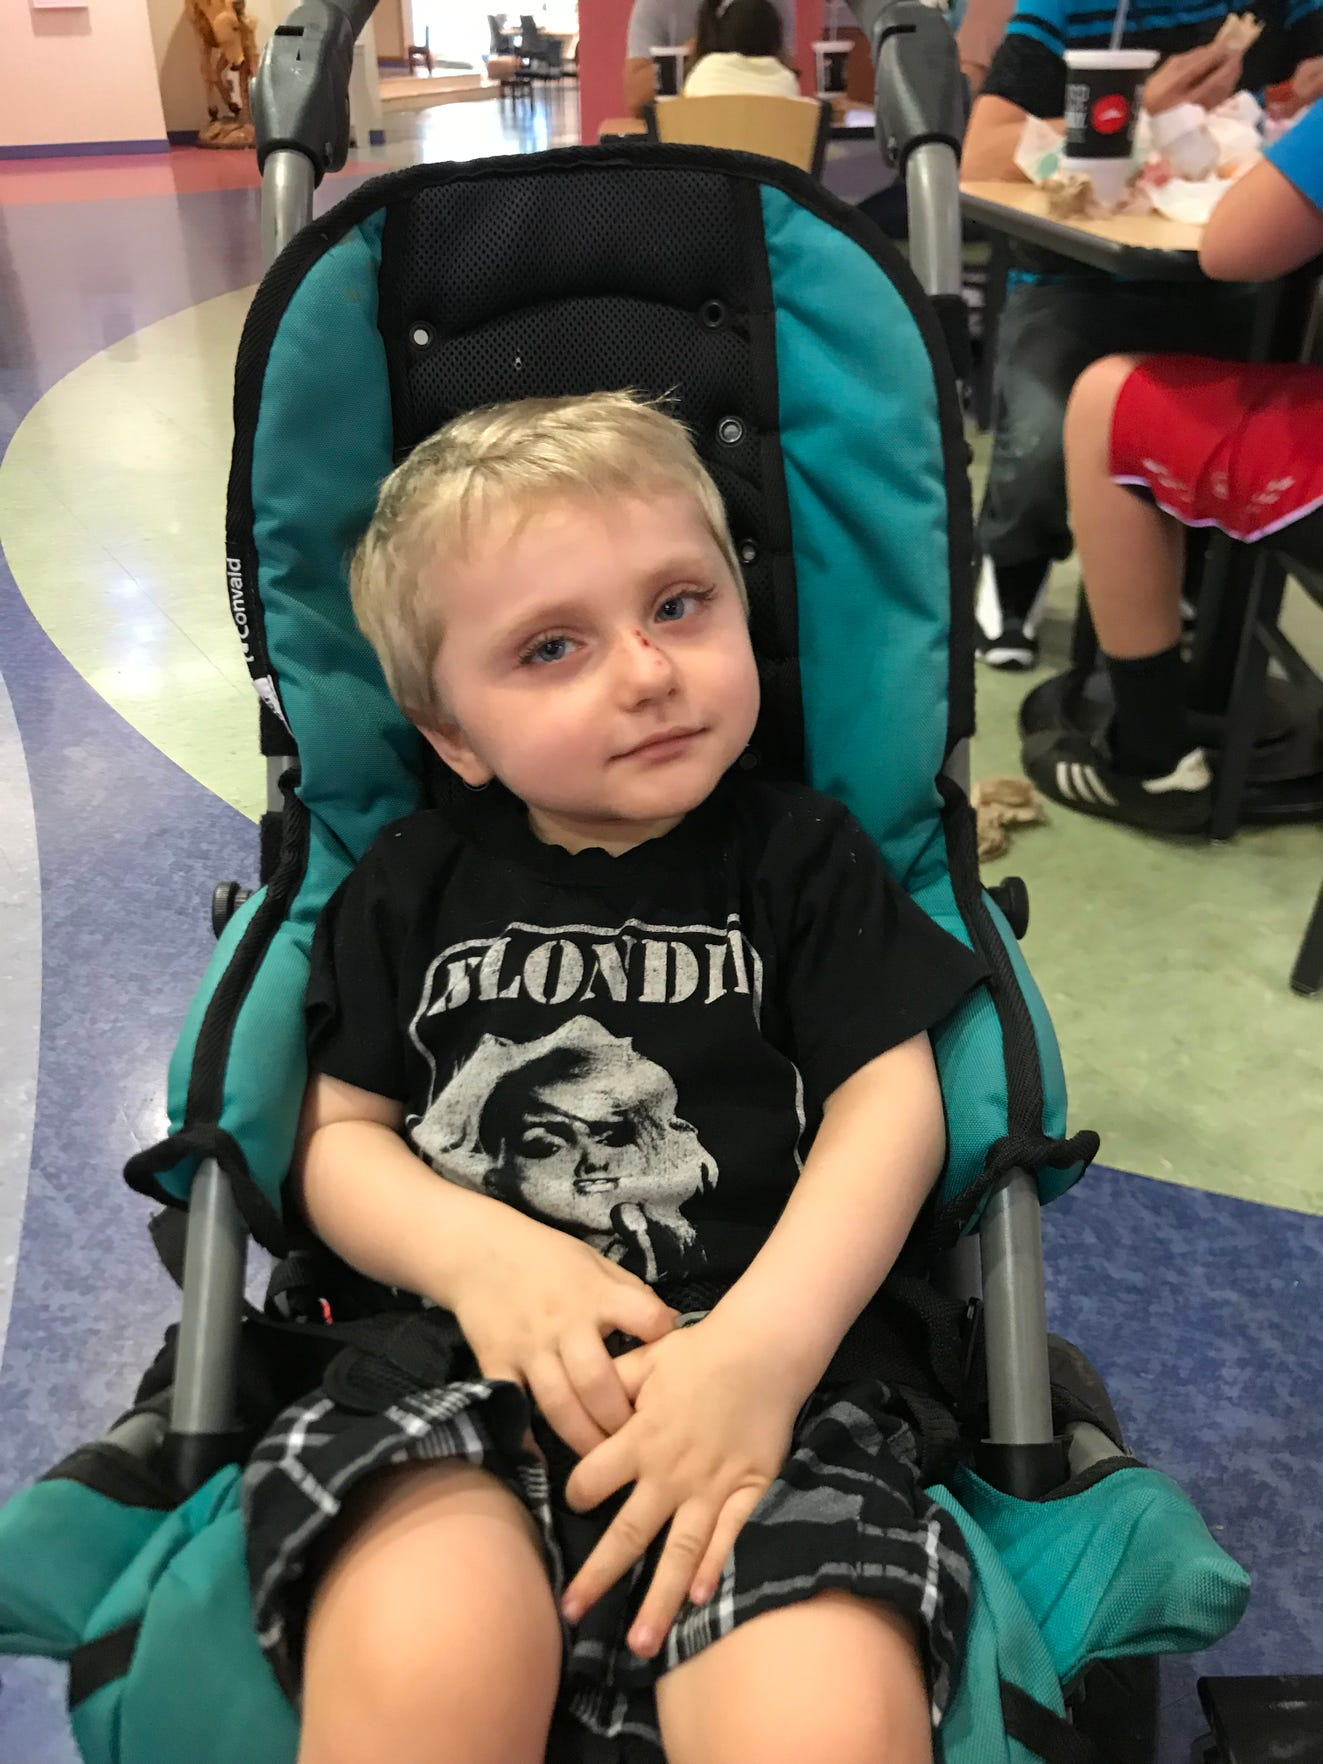 Carson Tugman, 3, of Staunton, at Vanderbilt University in Nashville, Tennessee, for a research study on rare genetic disorders. Tugman suffers from a rare genetic disorder caused by a pathogenic variant of the MECP2 gene known as Rett Syndrome.